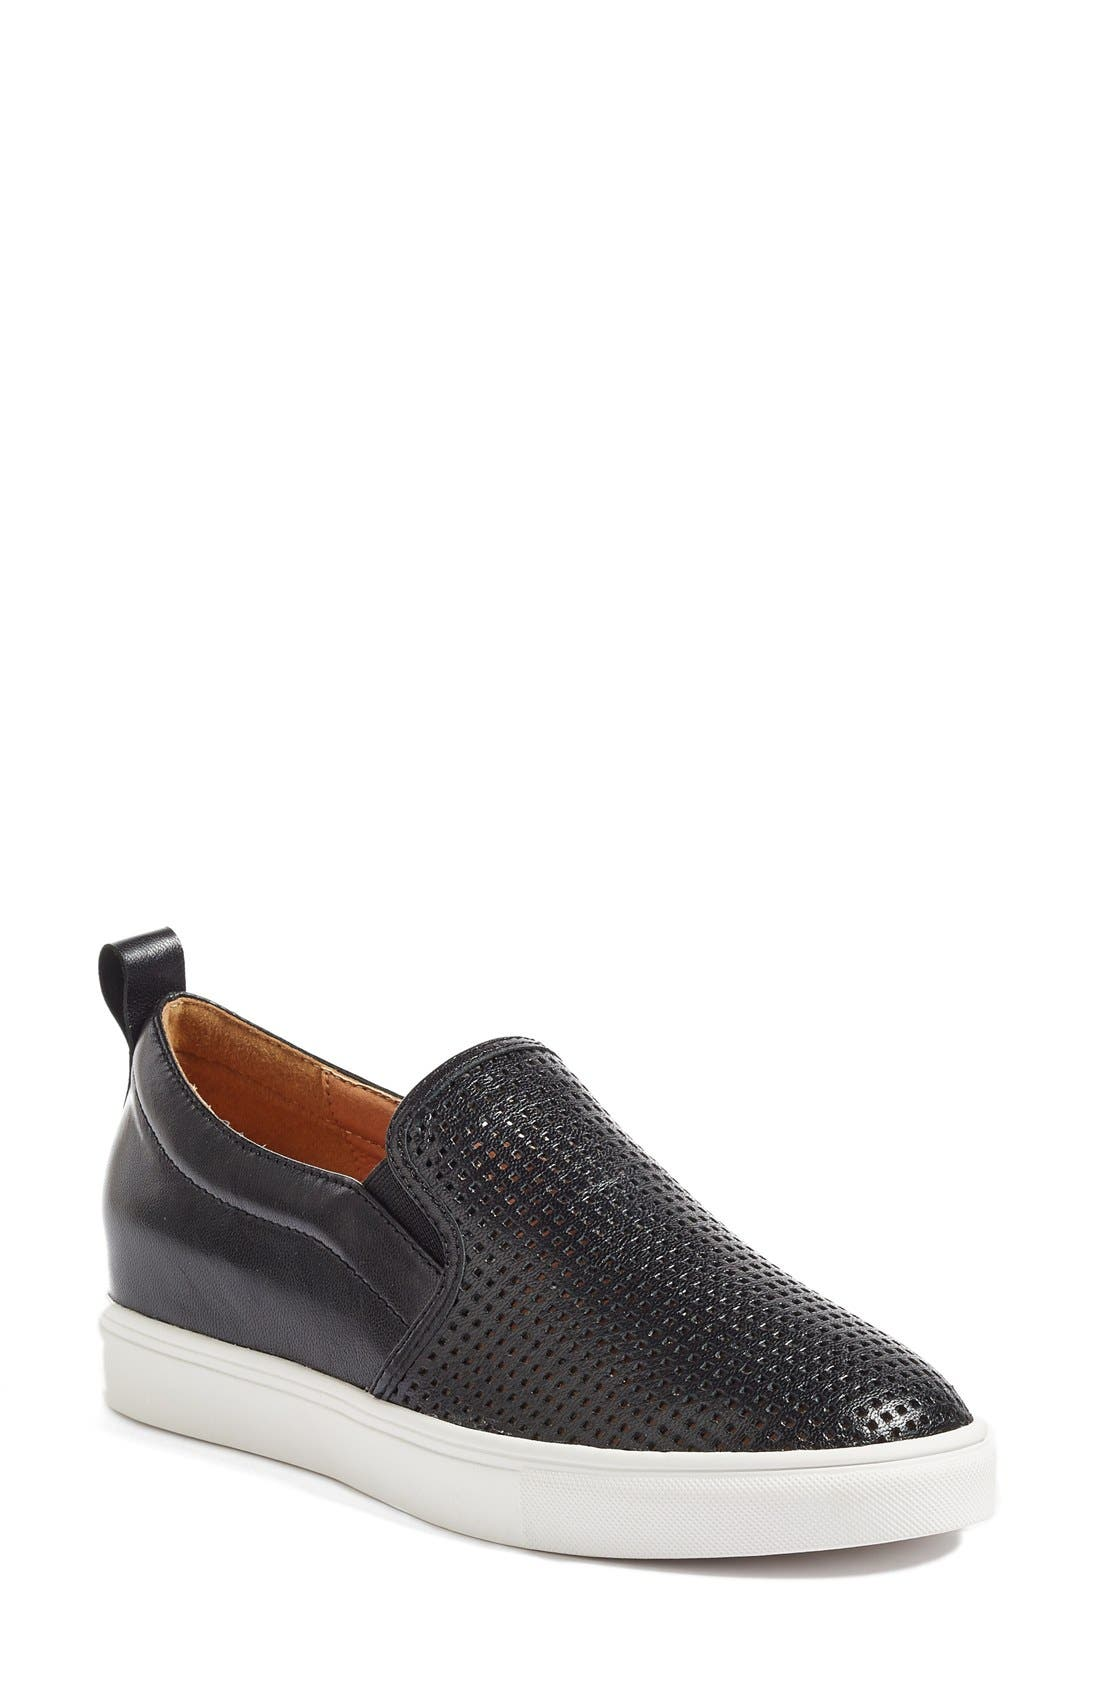 Eden Perforated Slip-On Sneaker,                             Main thumbnail 1, color,                             Black Leather